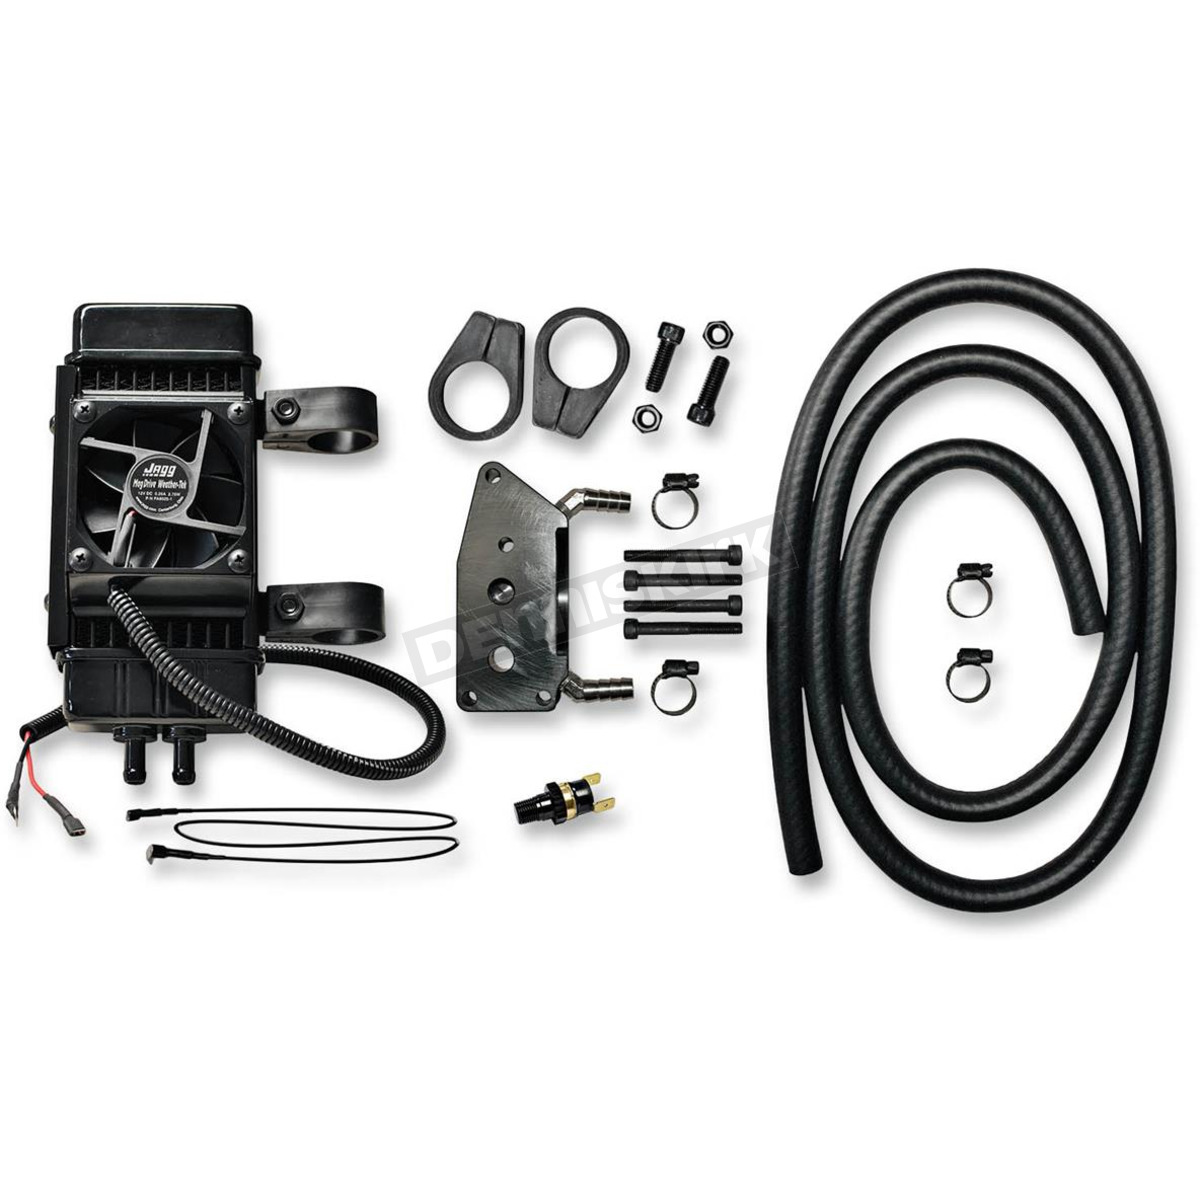 jagg gloss black 10-row vertical frame-mount fan-assisted oil cooler kit